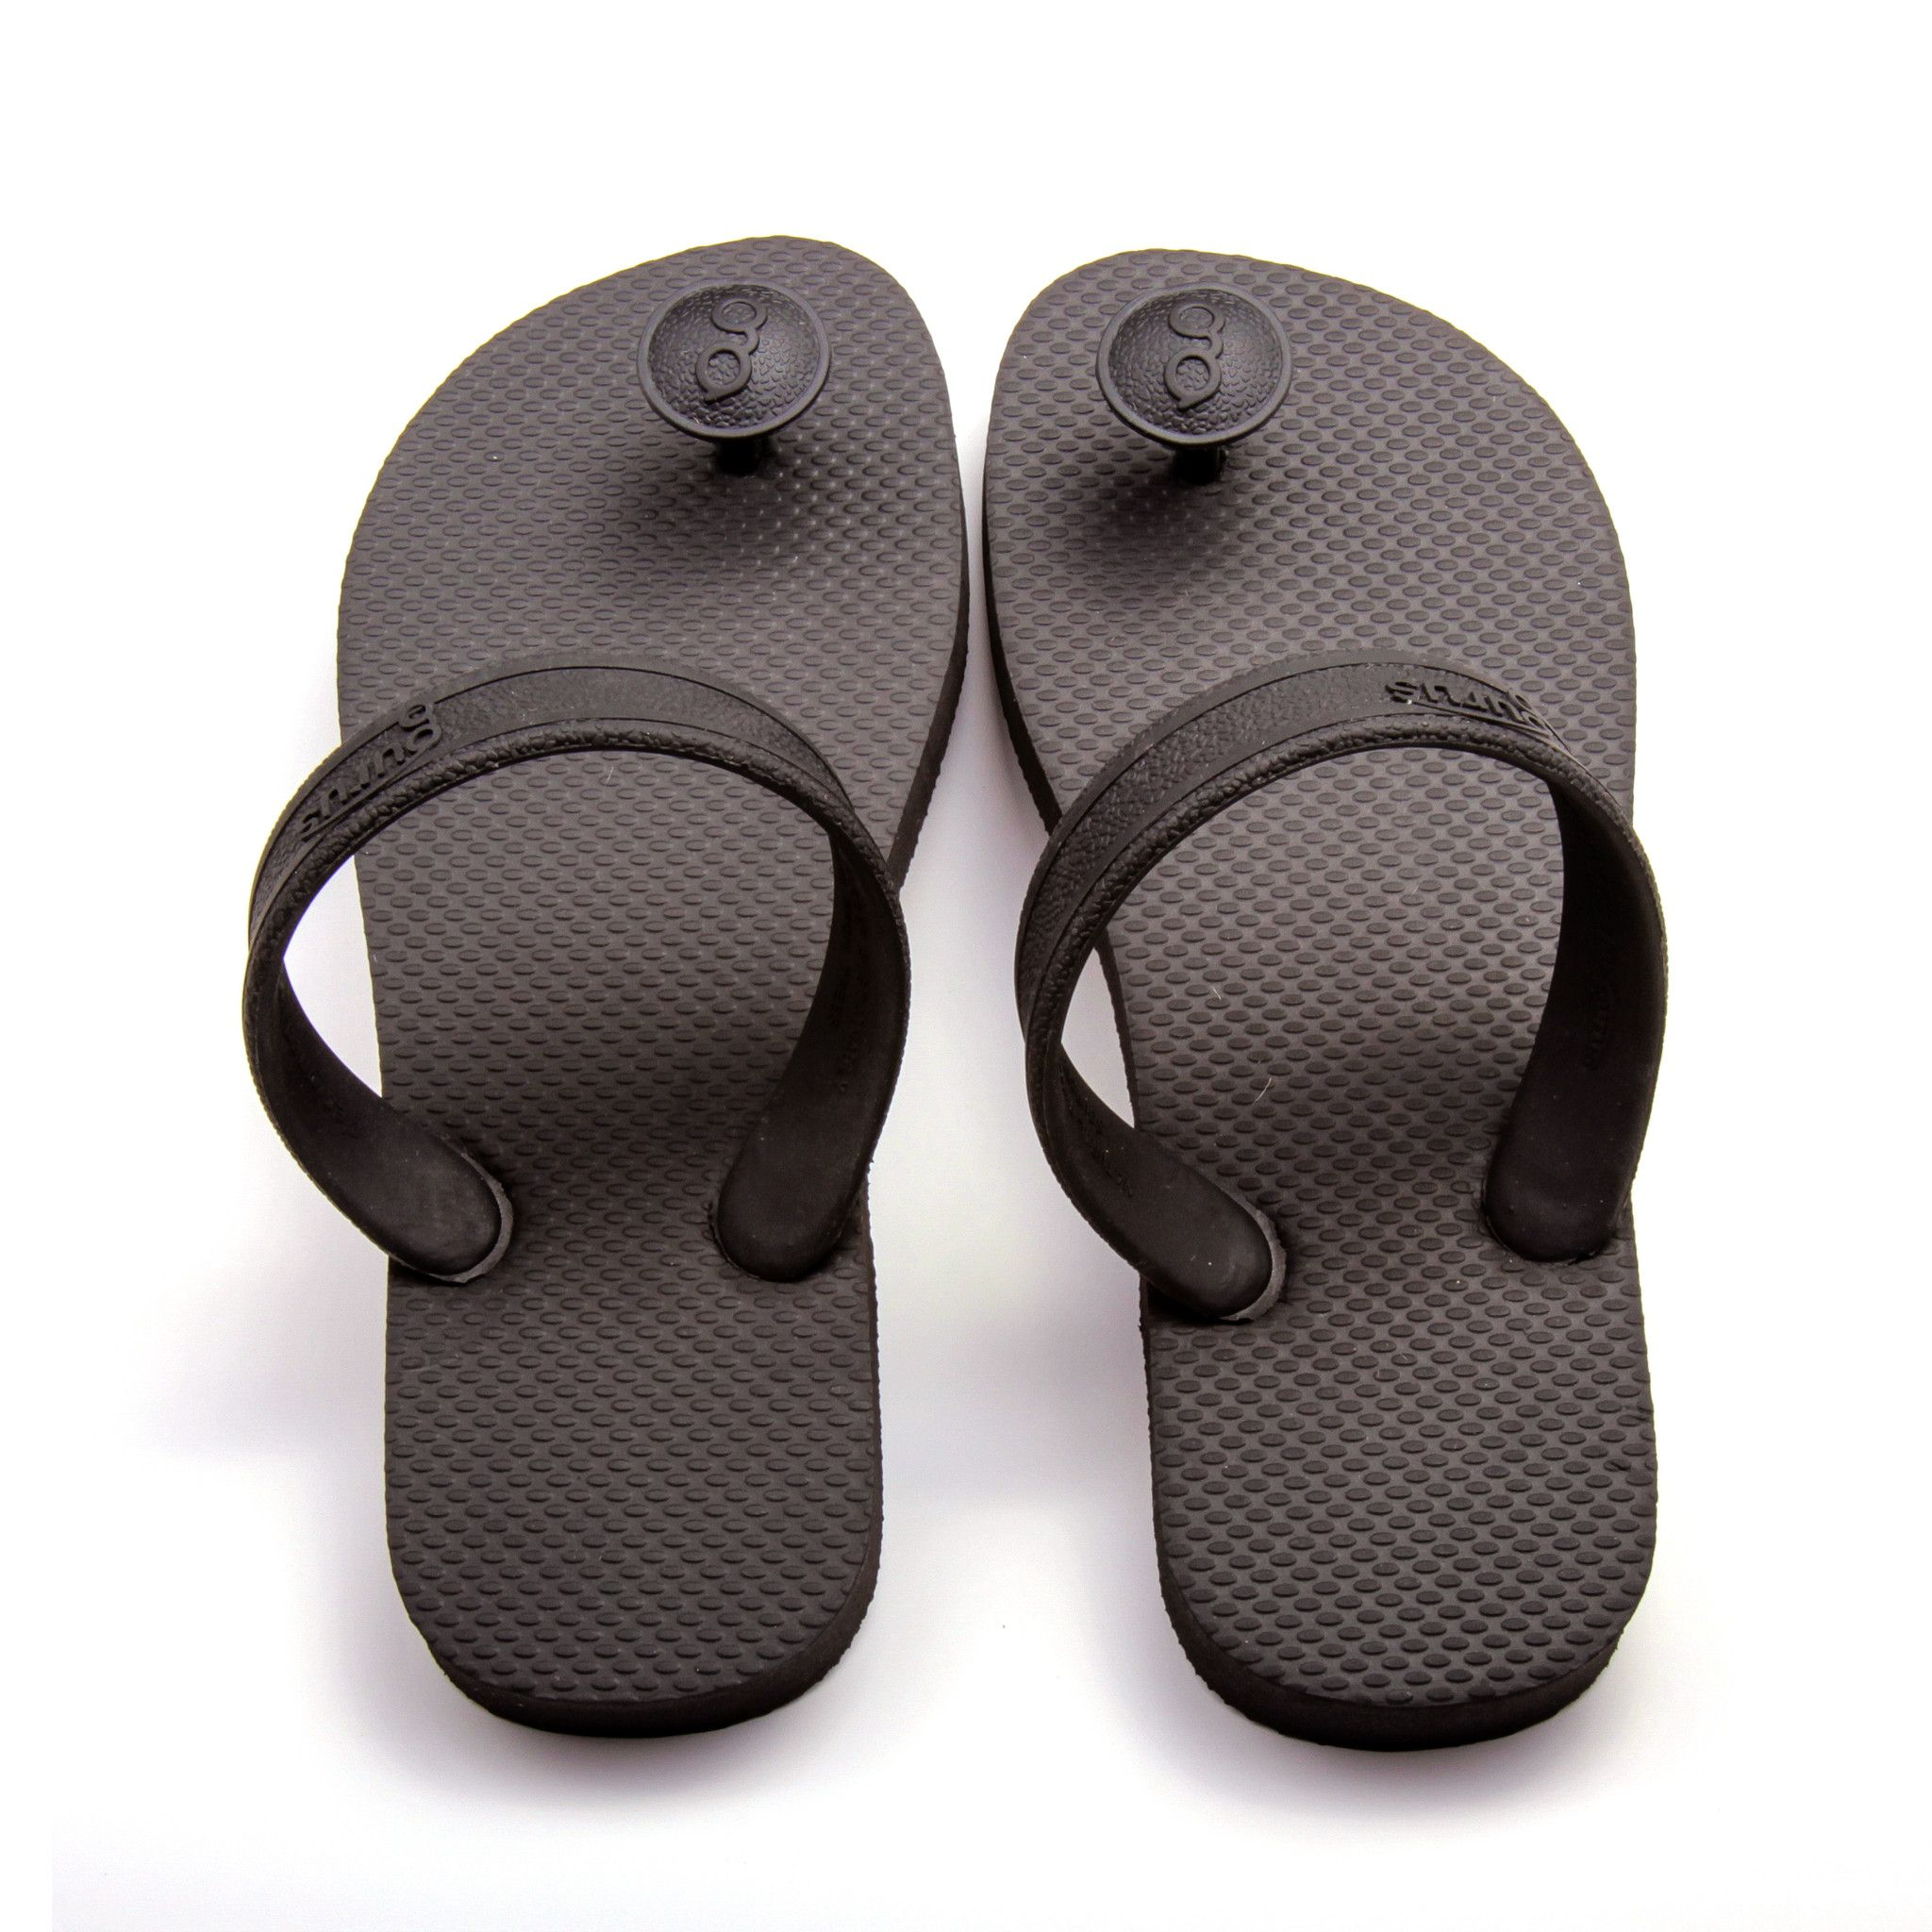 07c3381c835222 These black natural sandals are perfect for kids and match the adult  versions. Gurus are easy to put on